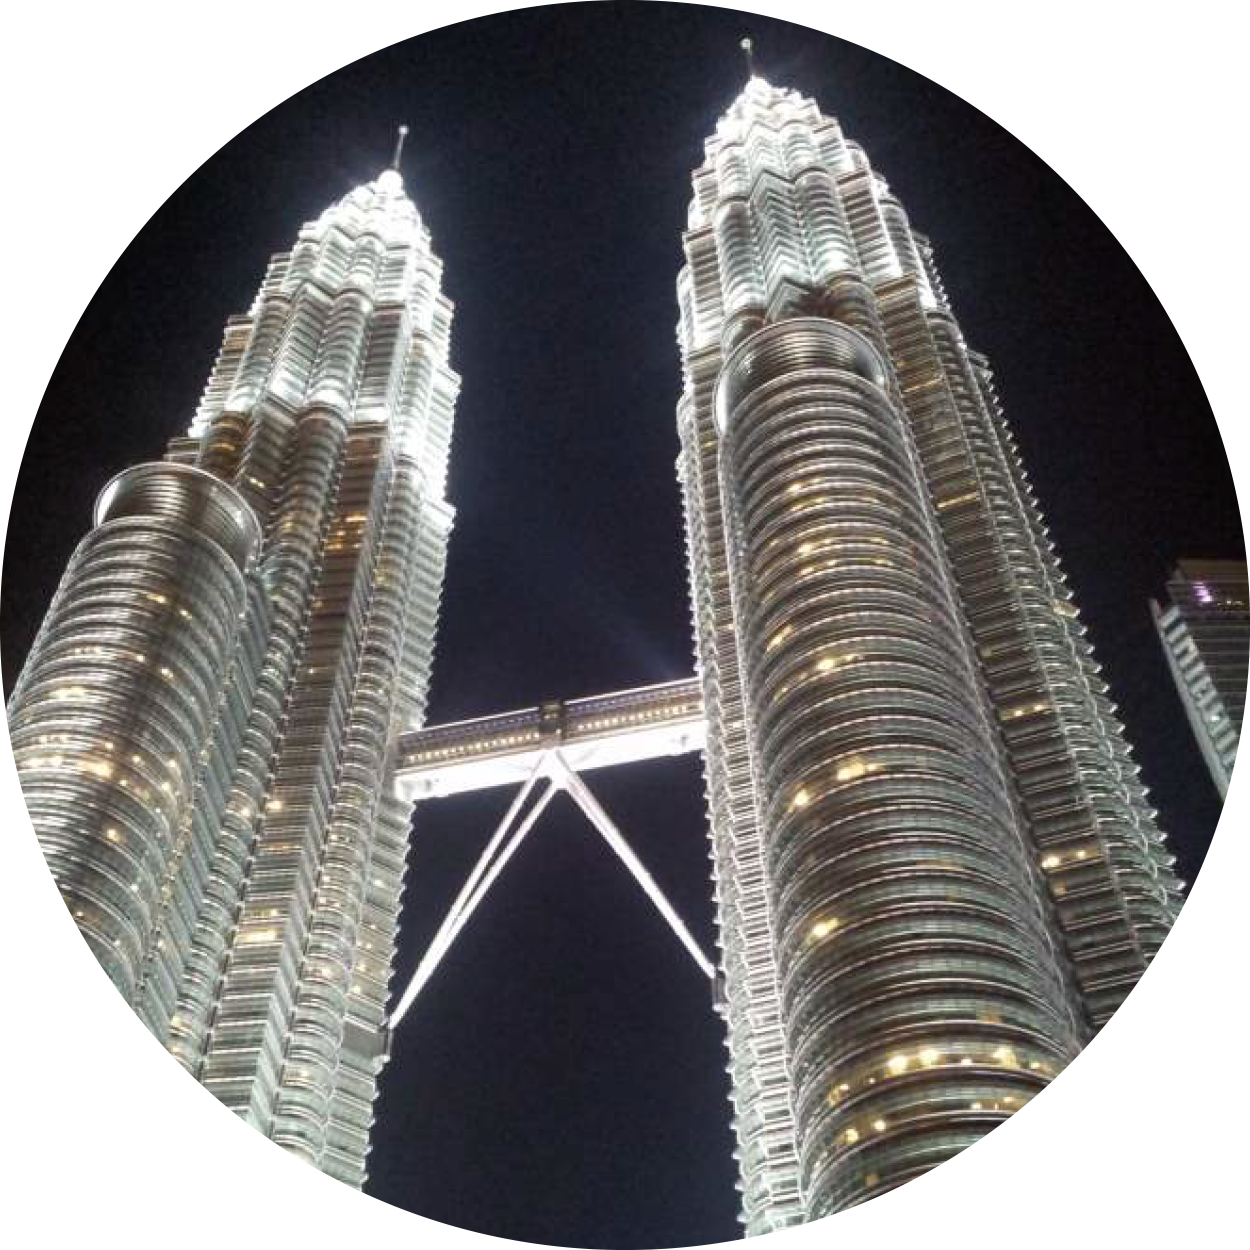 An inmage of the Petronas Twin Towers from the Kuala Lumpur city tour package conducted by the dedicated Malaysian tour guides here at MM Adventure, representing the vibrant, historical cities you can explore when travelling in and around Kuala Lumpur, Malaysia.